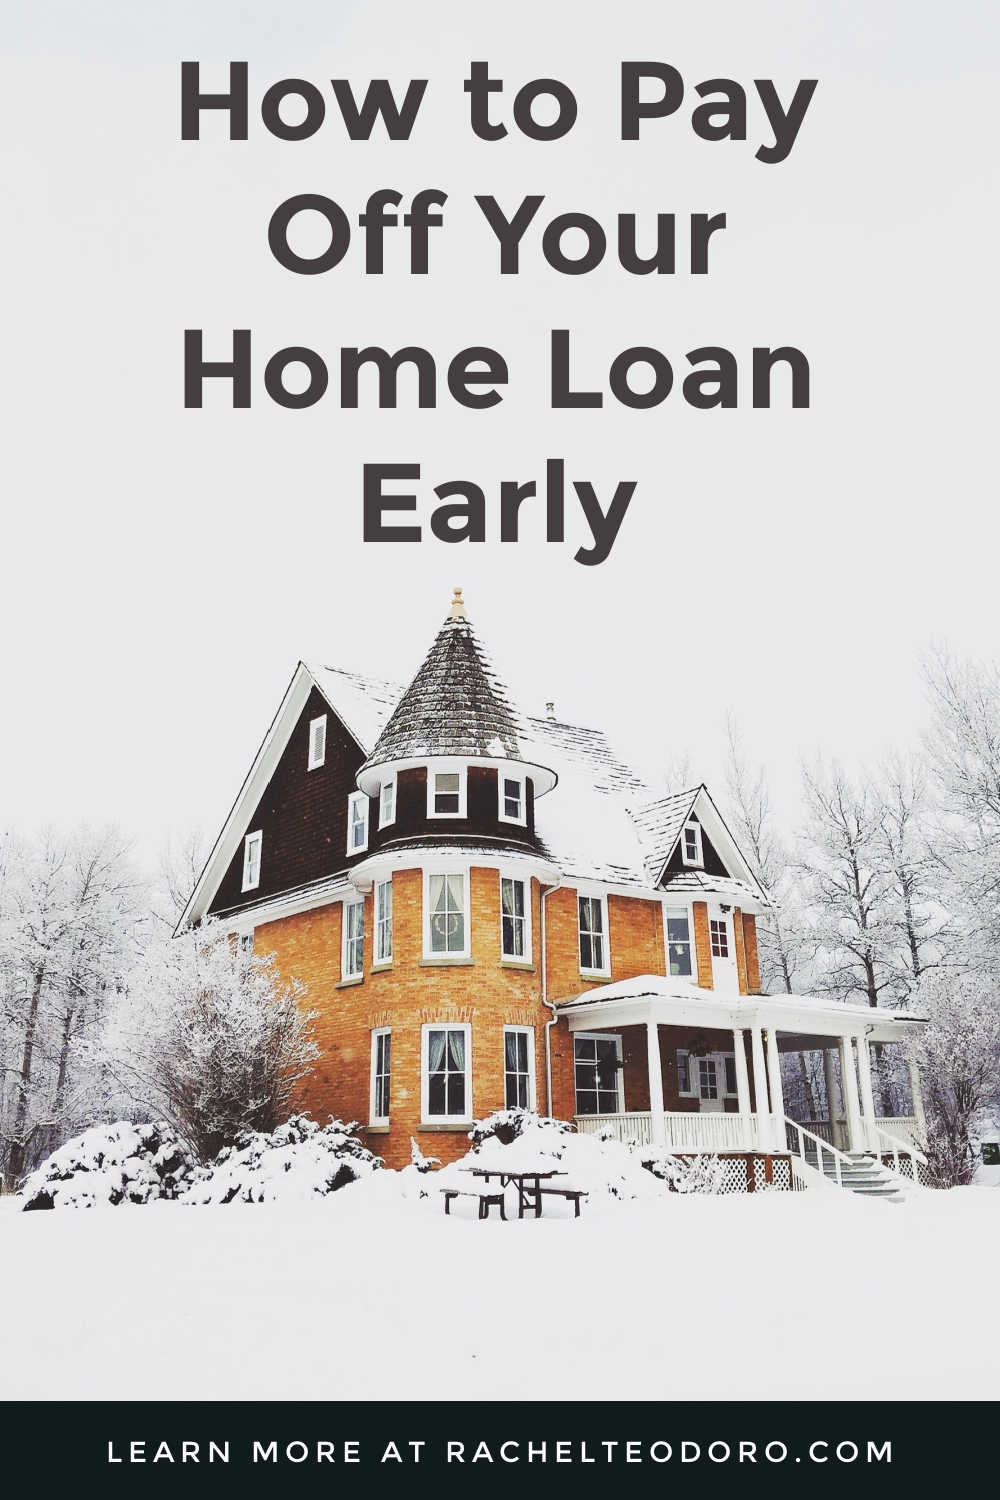 PAY OFF HOME LOAN EARLY